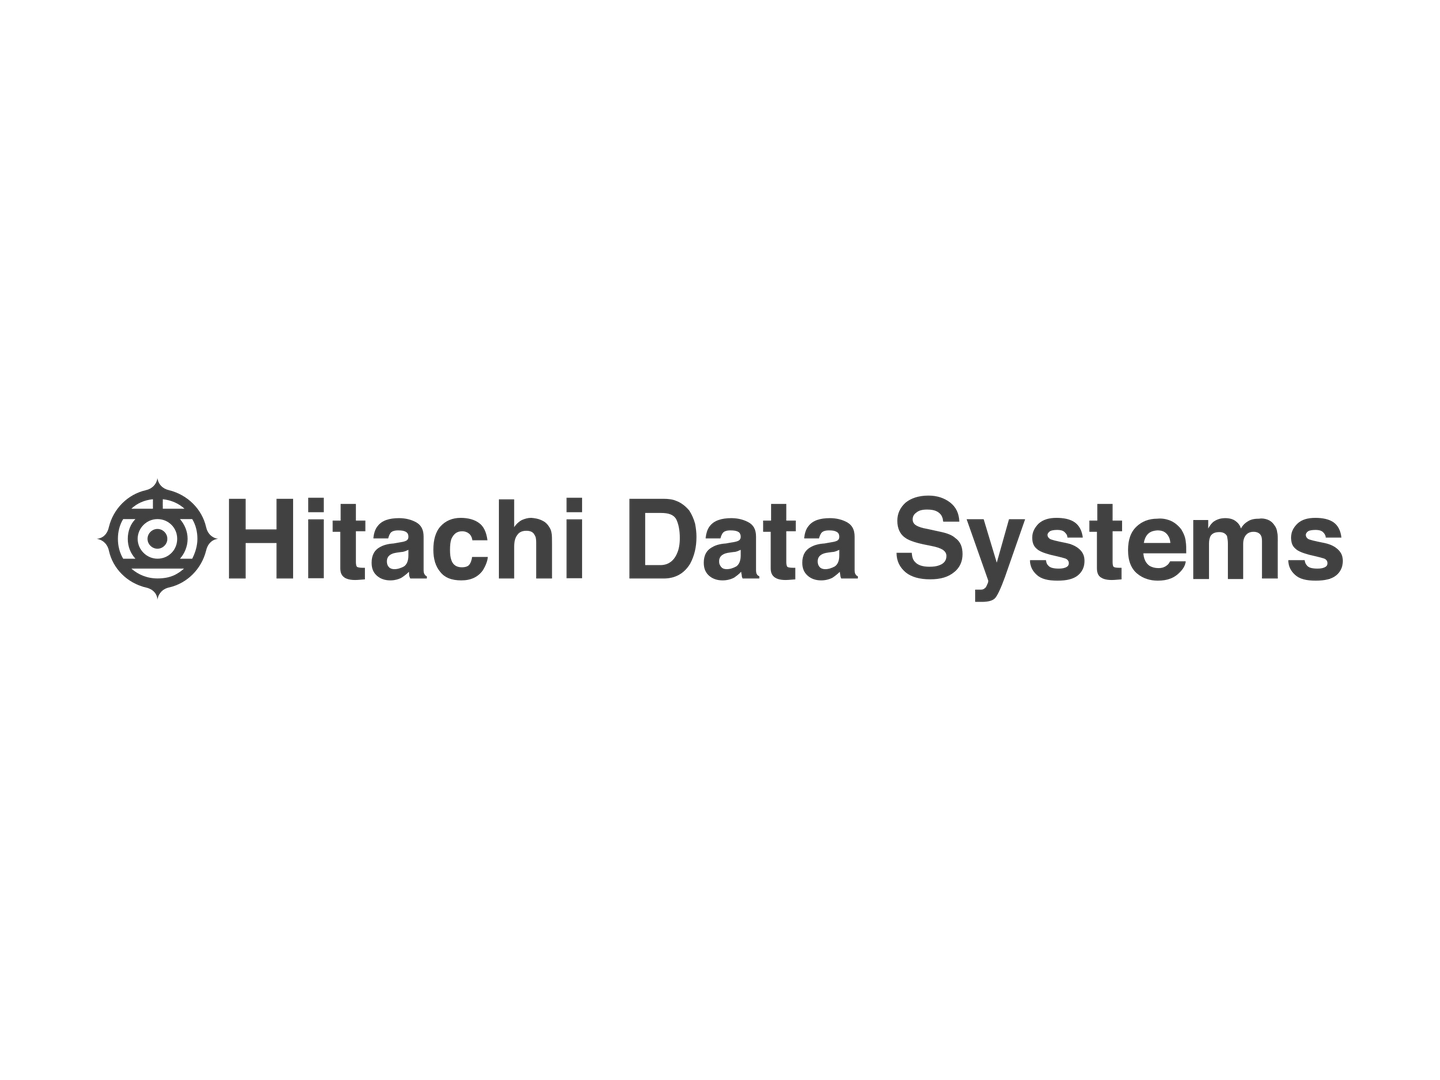 Hitachi_Data_Systems-Logo.wine.png